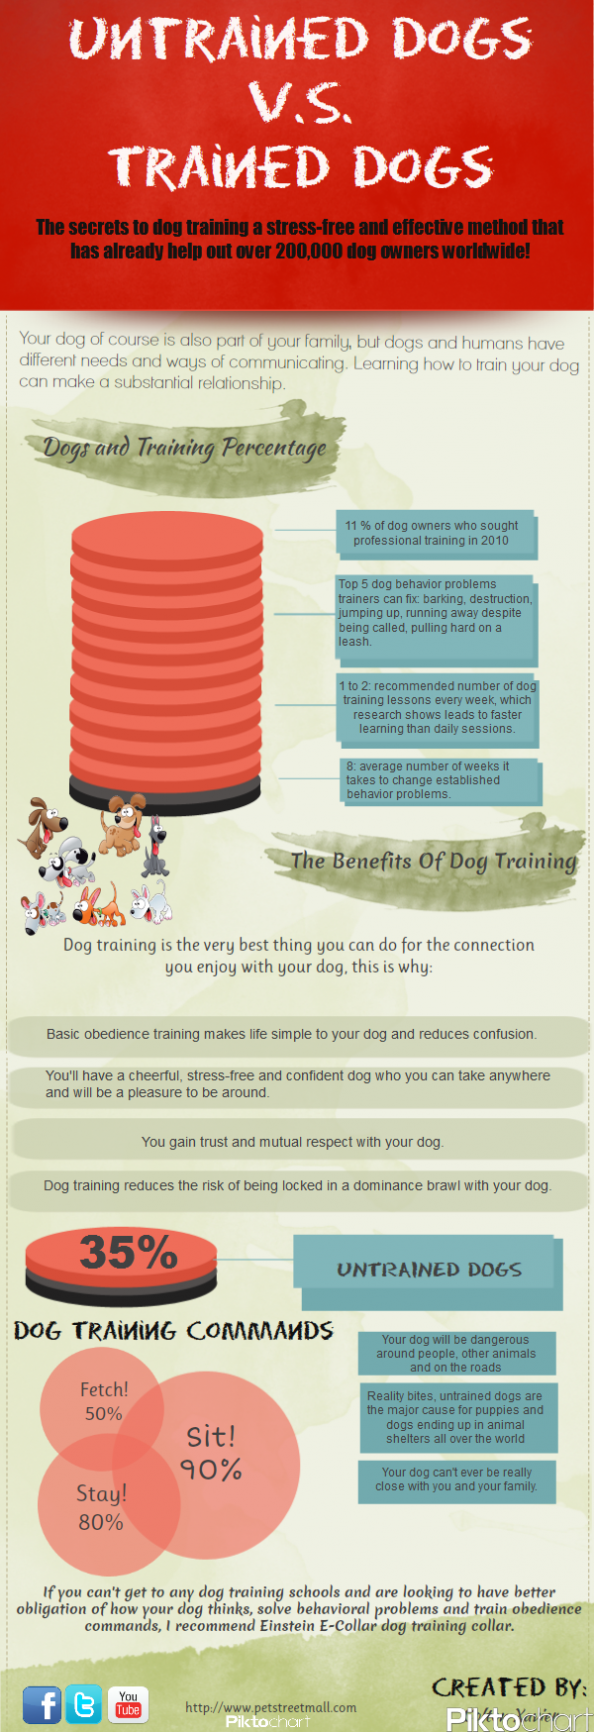 Untrained Dog Versus Trained Dog Infographic